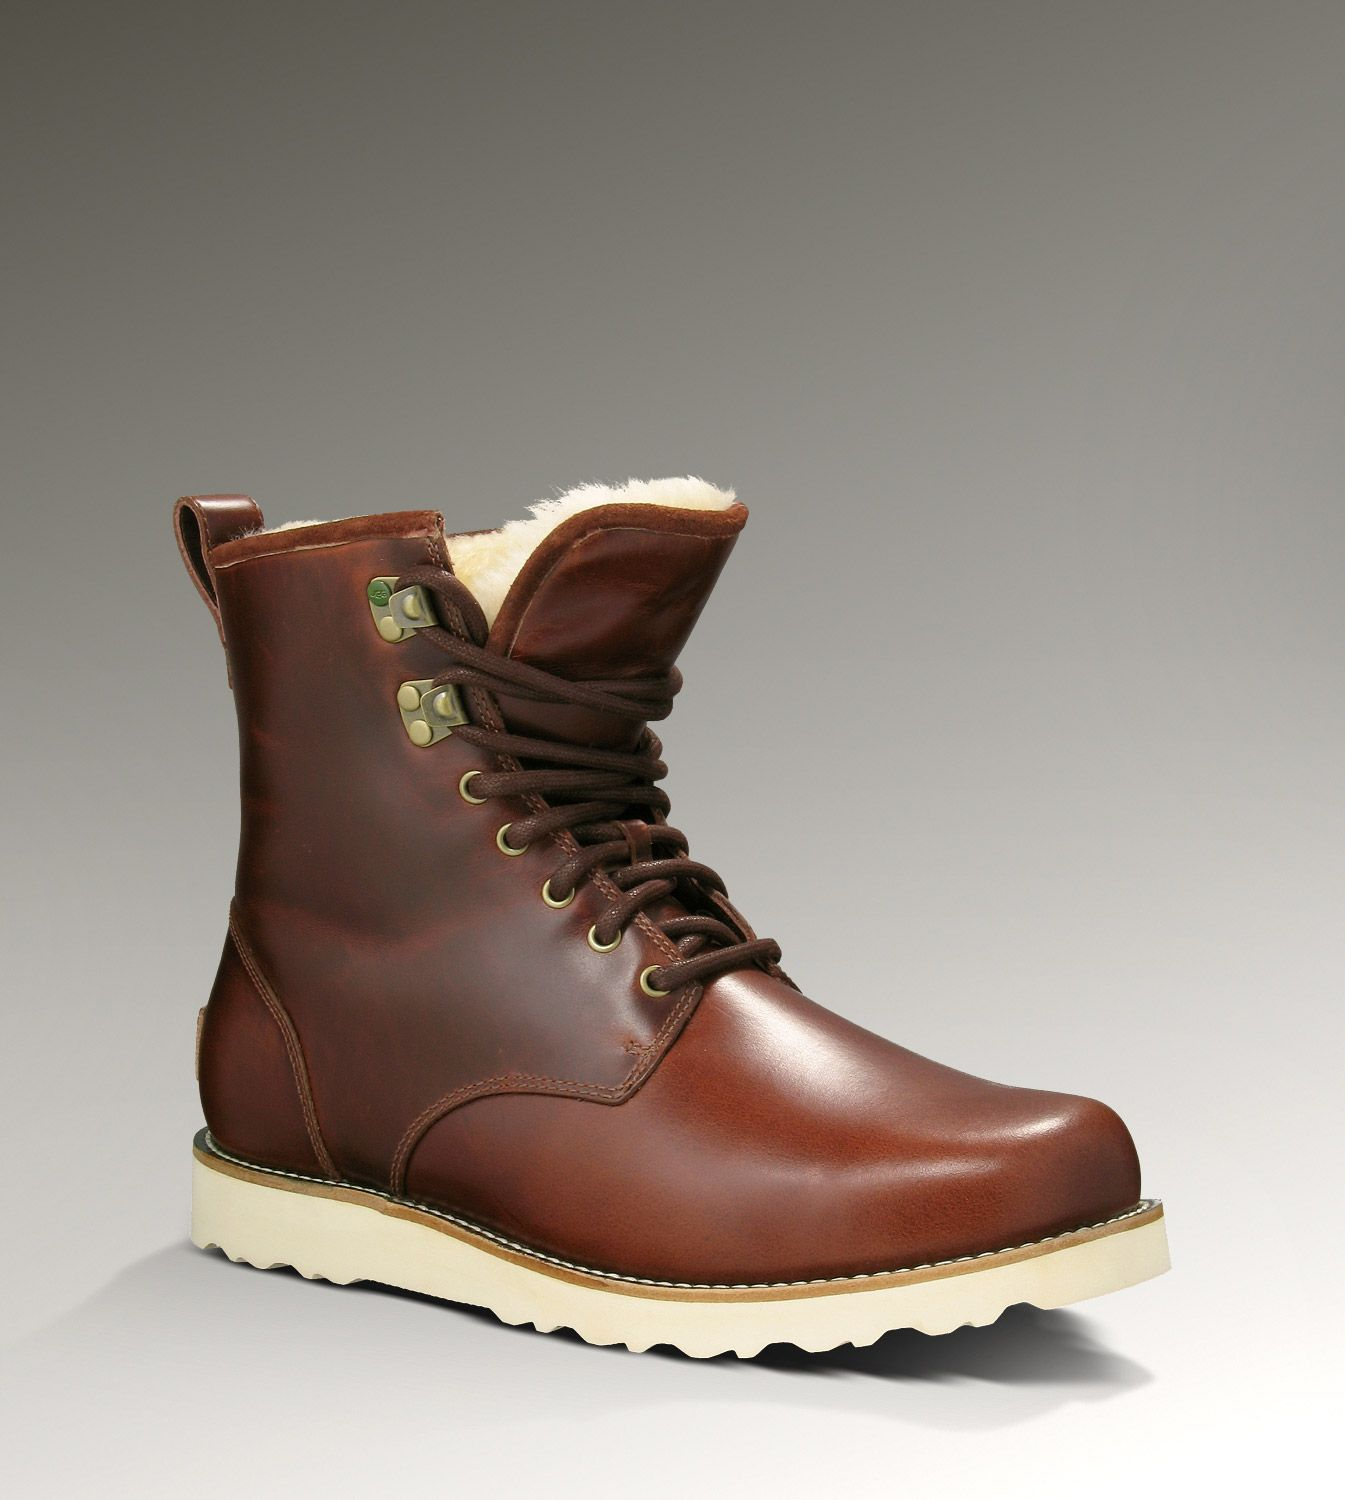 436cda33a75 Hannen for Men | Waterproof Leather Work Boots | Mens | Mens winter ...